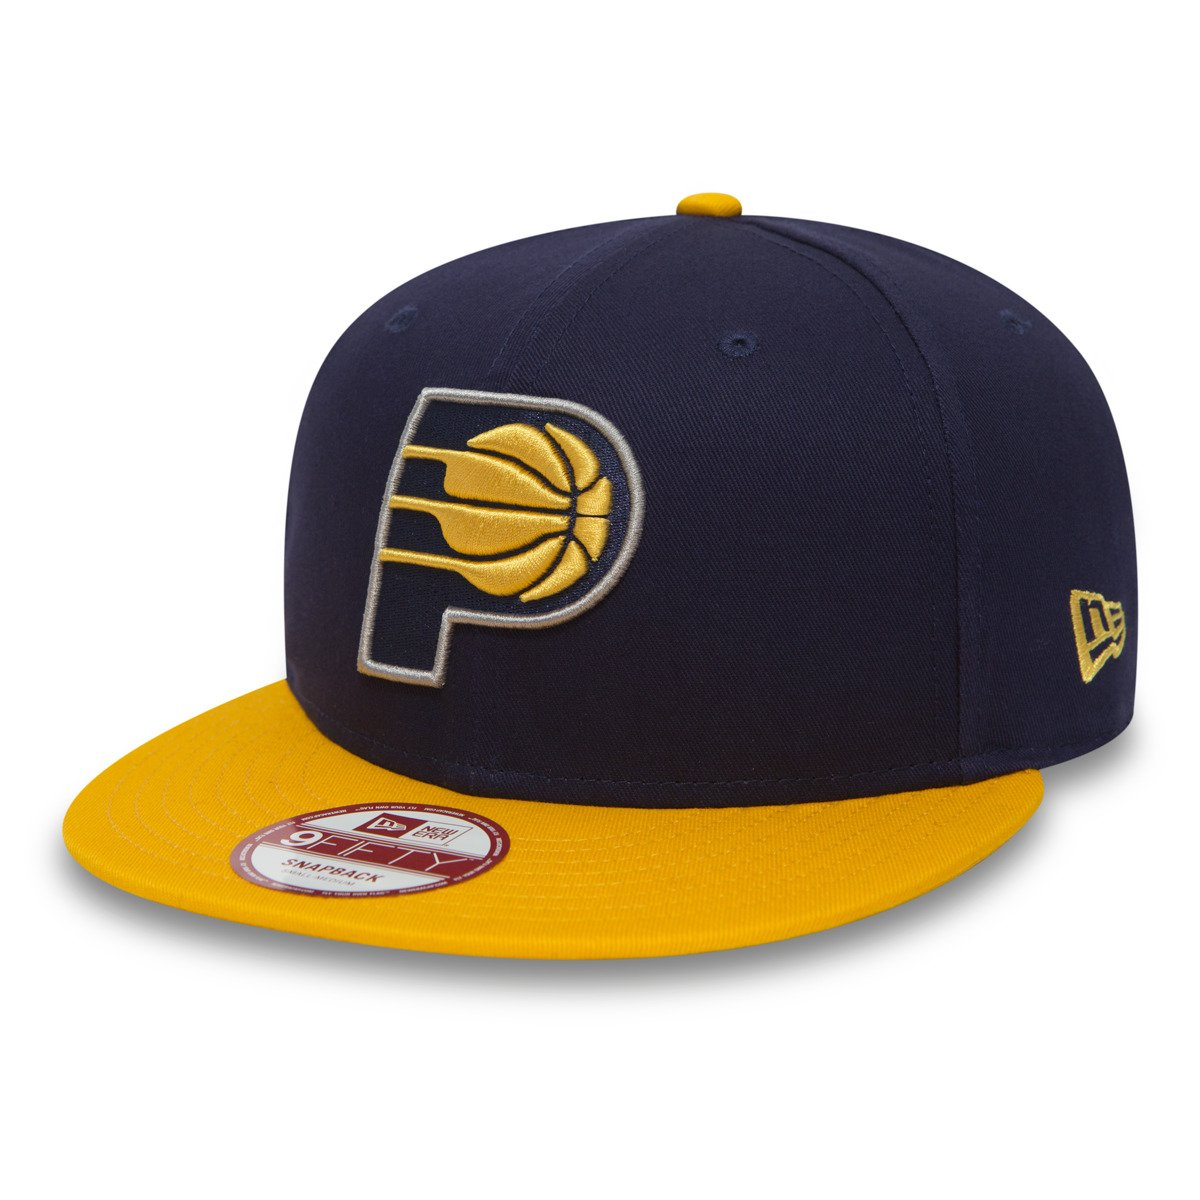 premium selection ef0b9 c795c sale new era 9fifty indiana pacers snapback 11394830 ec3c9 2f9e0